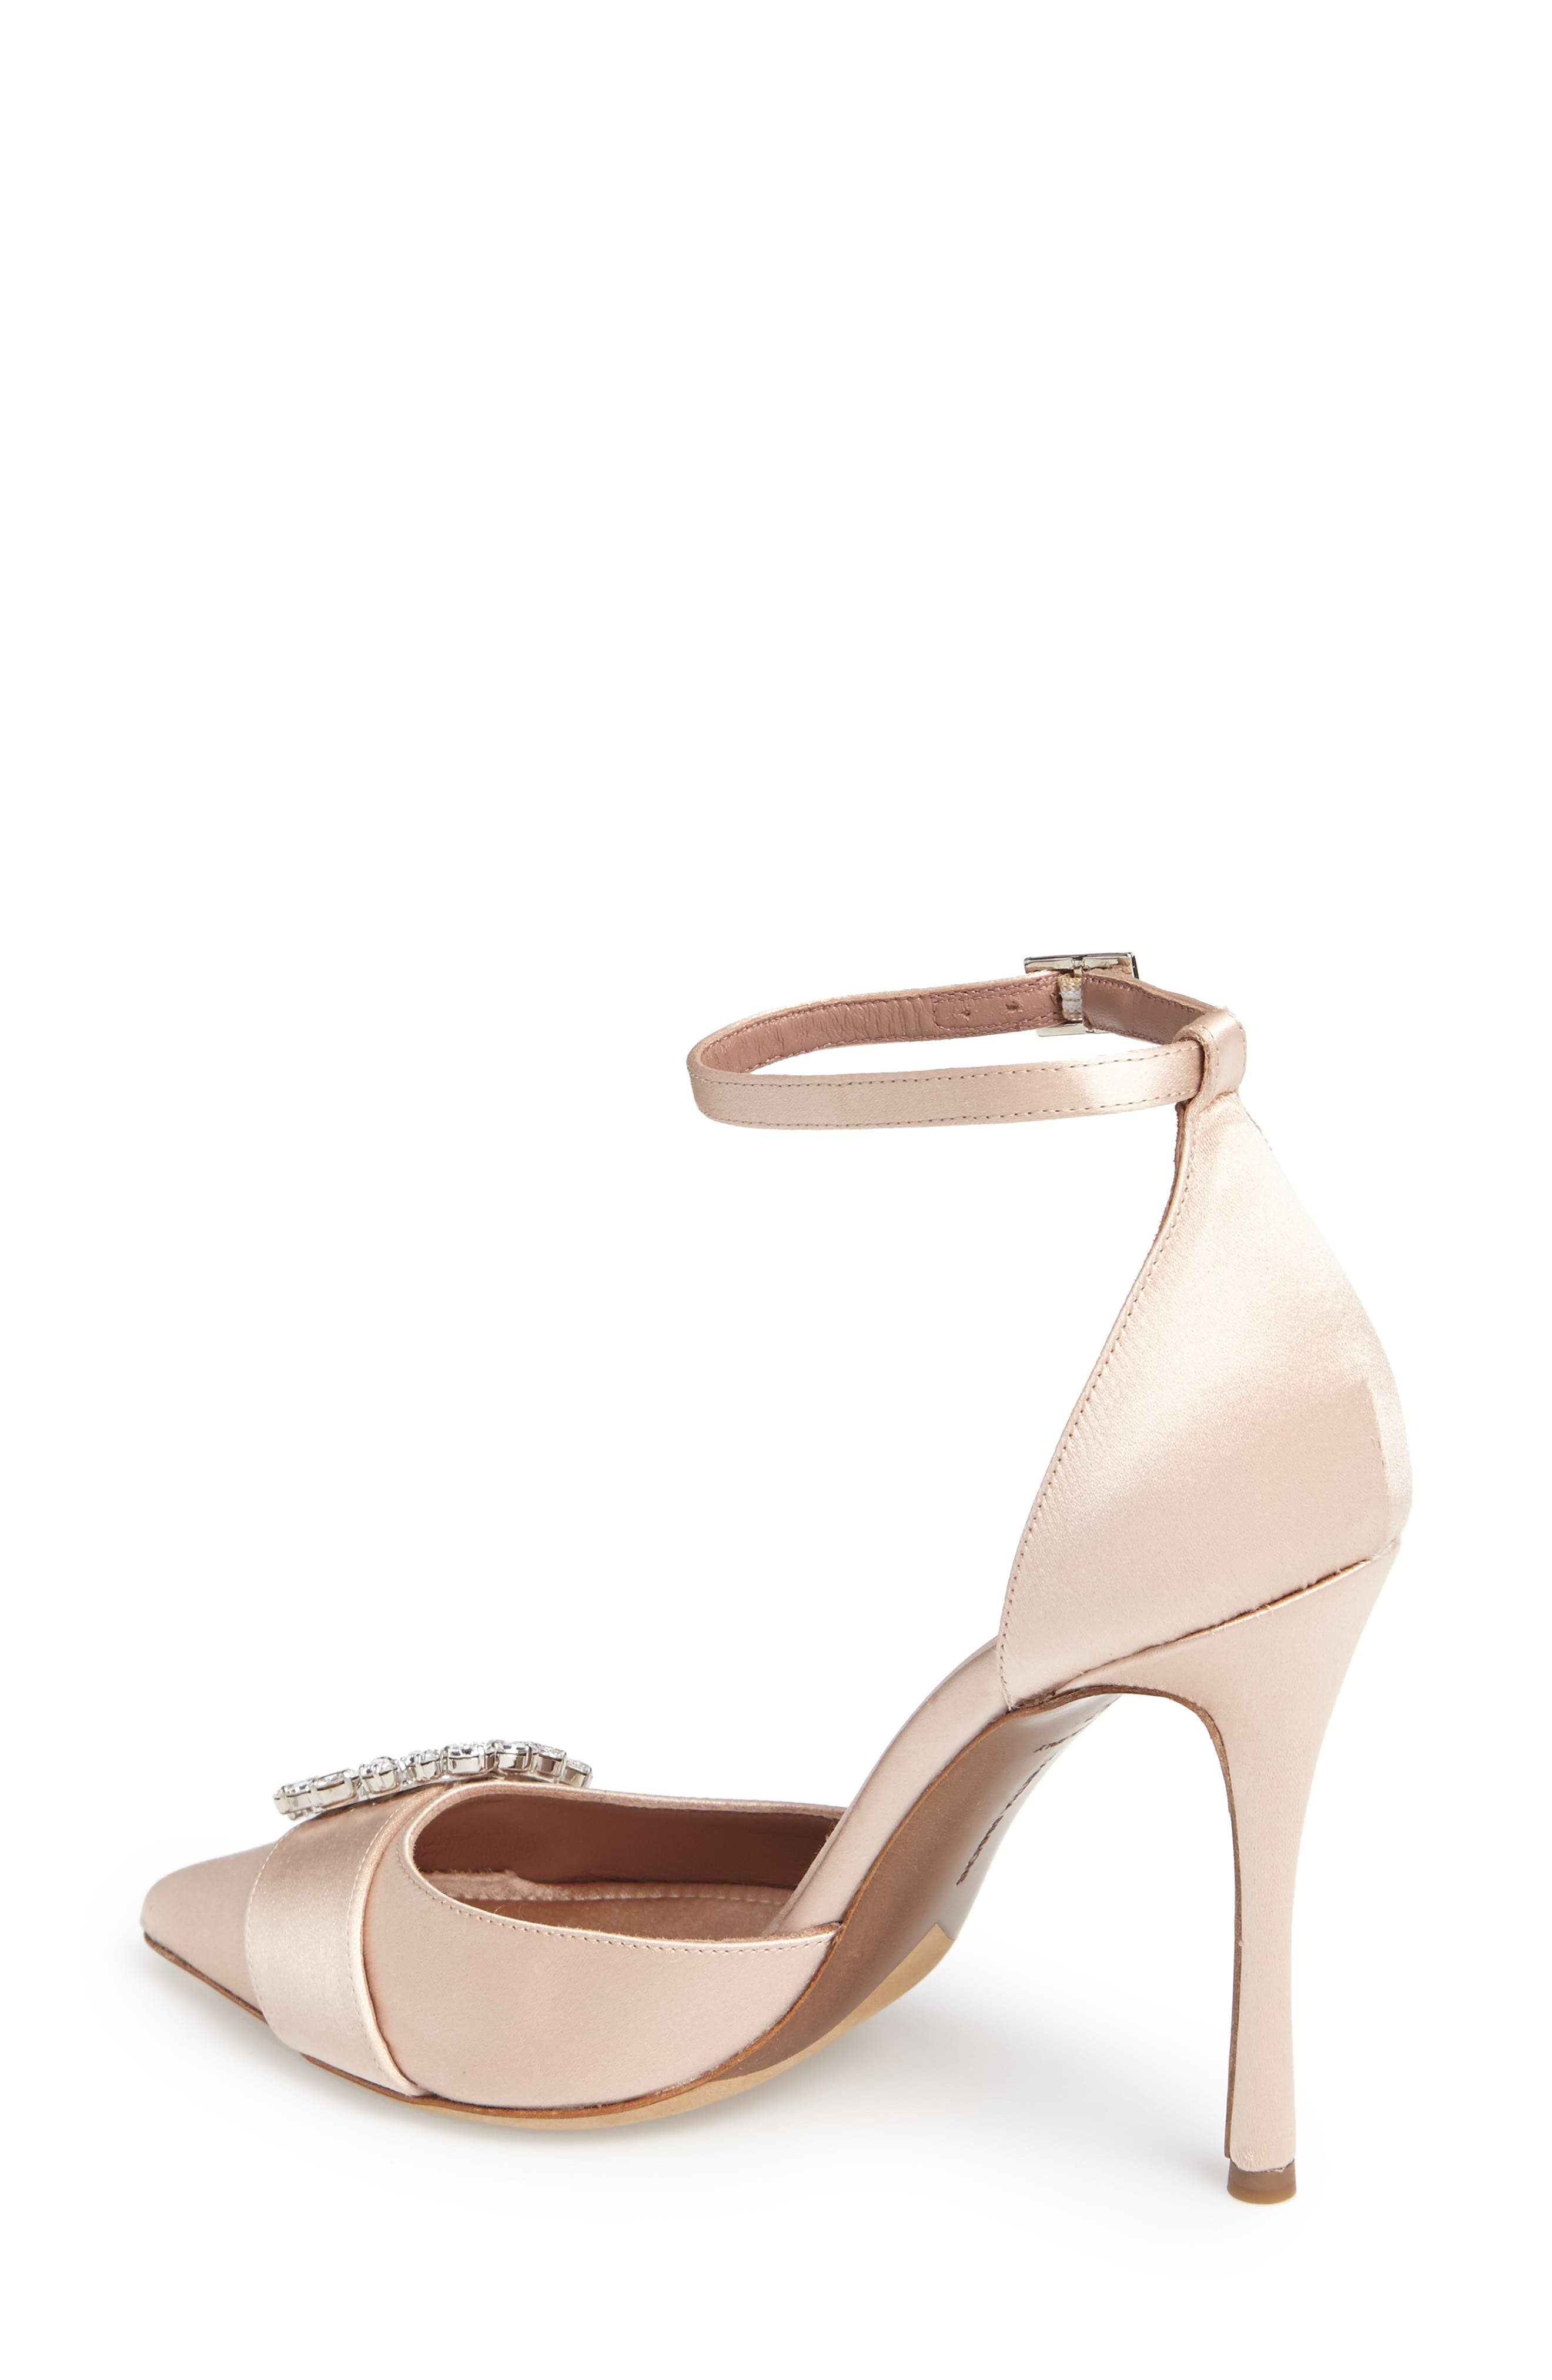 Tie The Knot Crystal Buckle Pump,                             Alternate thumbnail 2, color,                             250